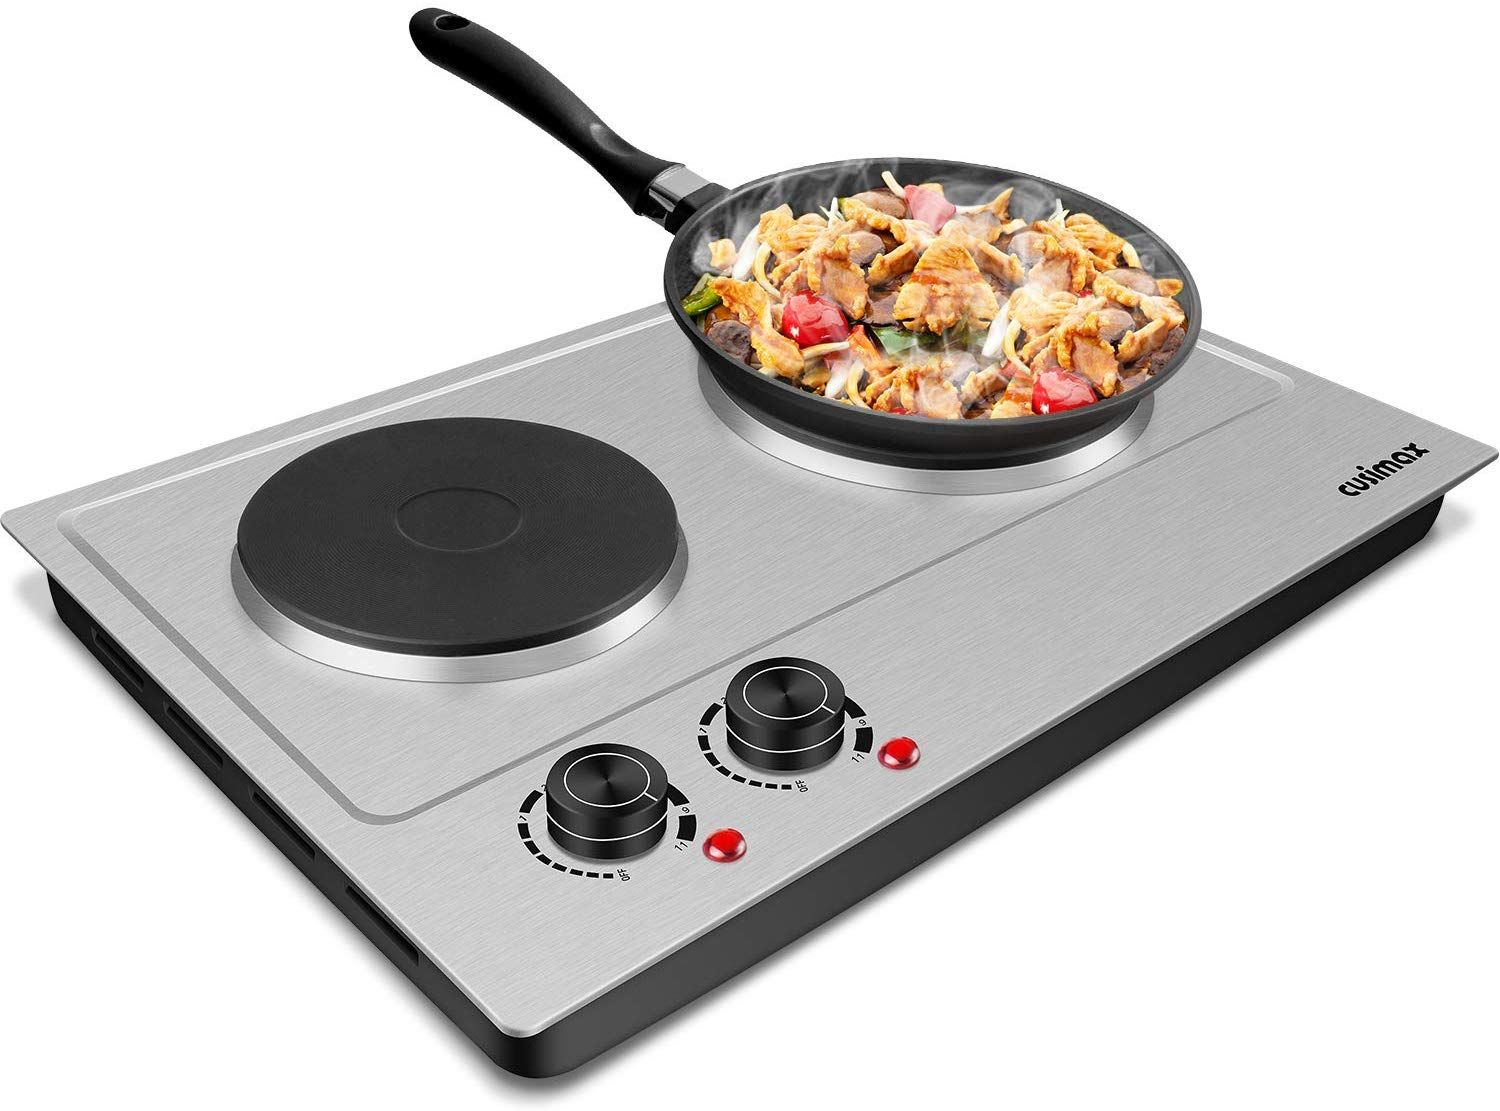 Portable Electric Double Burners Electric Cast Iron Hot Plates Cooktop Hotplate Cooking Portablestove Cooktop Double Burner Hot Plate Hot Plates